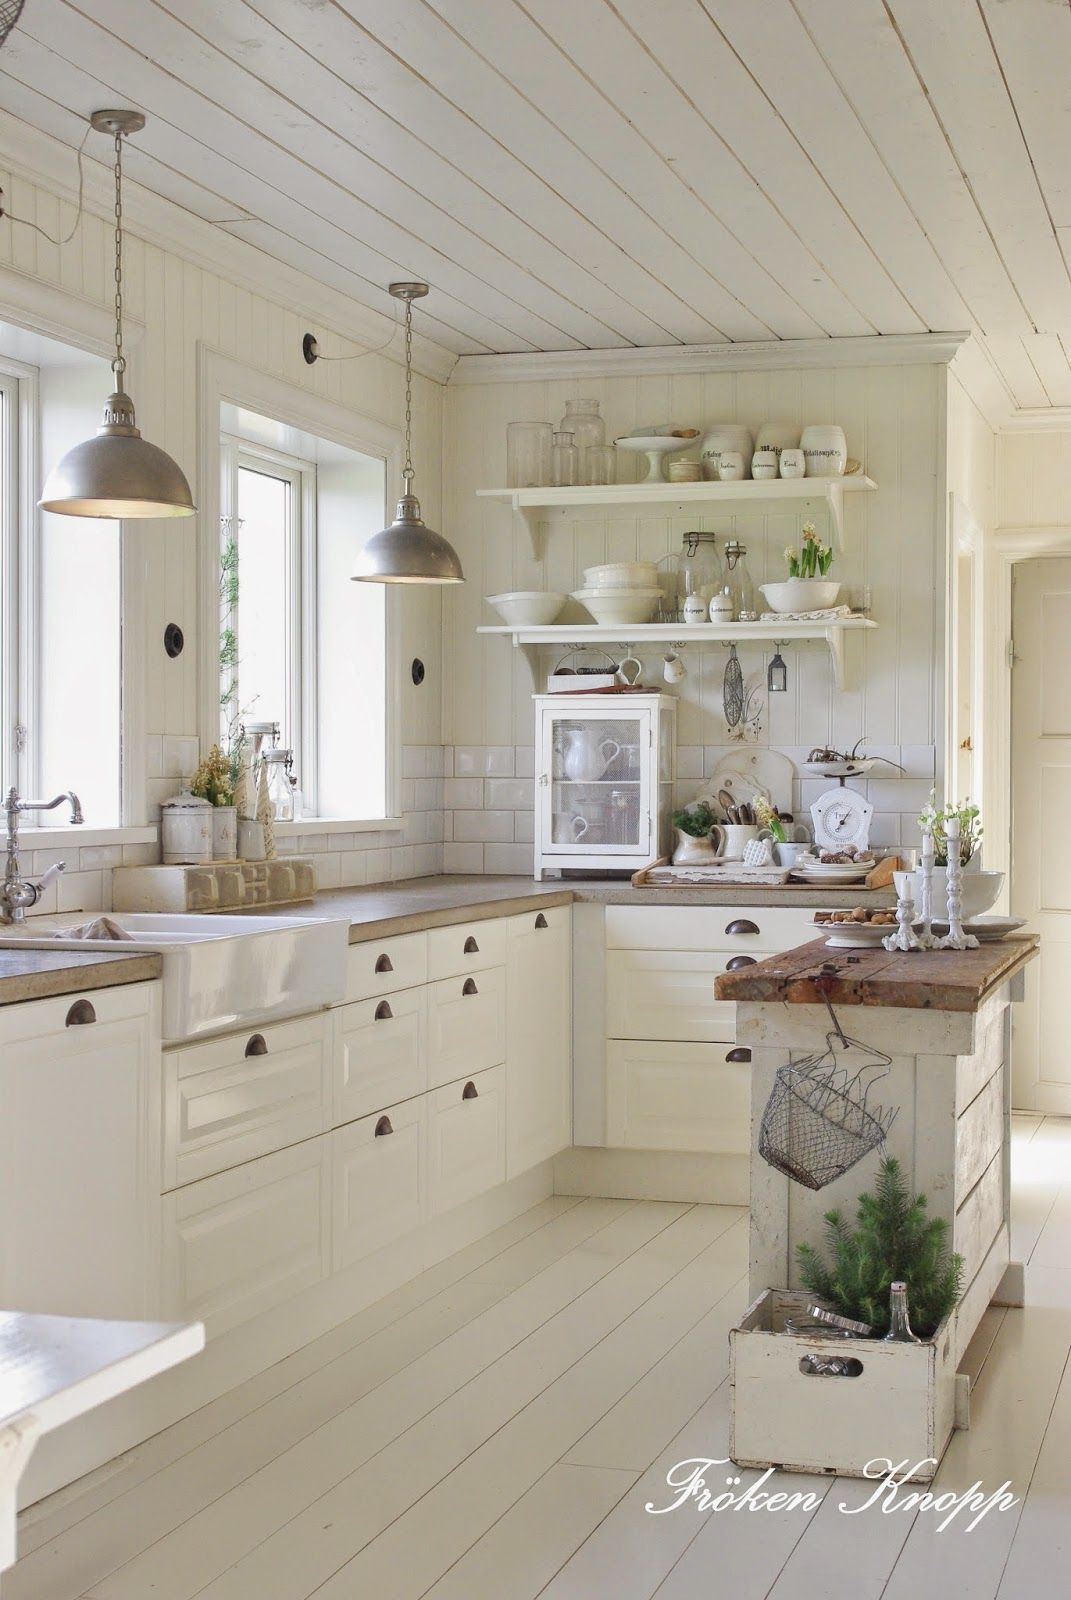 Love This Entire Kitchen Farm House Sink Open Shelving White Cabinets Lots Of Natural Light And A Sweet Island With Reclaimed Wood Top